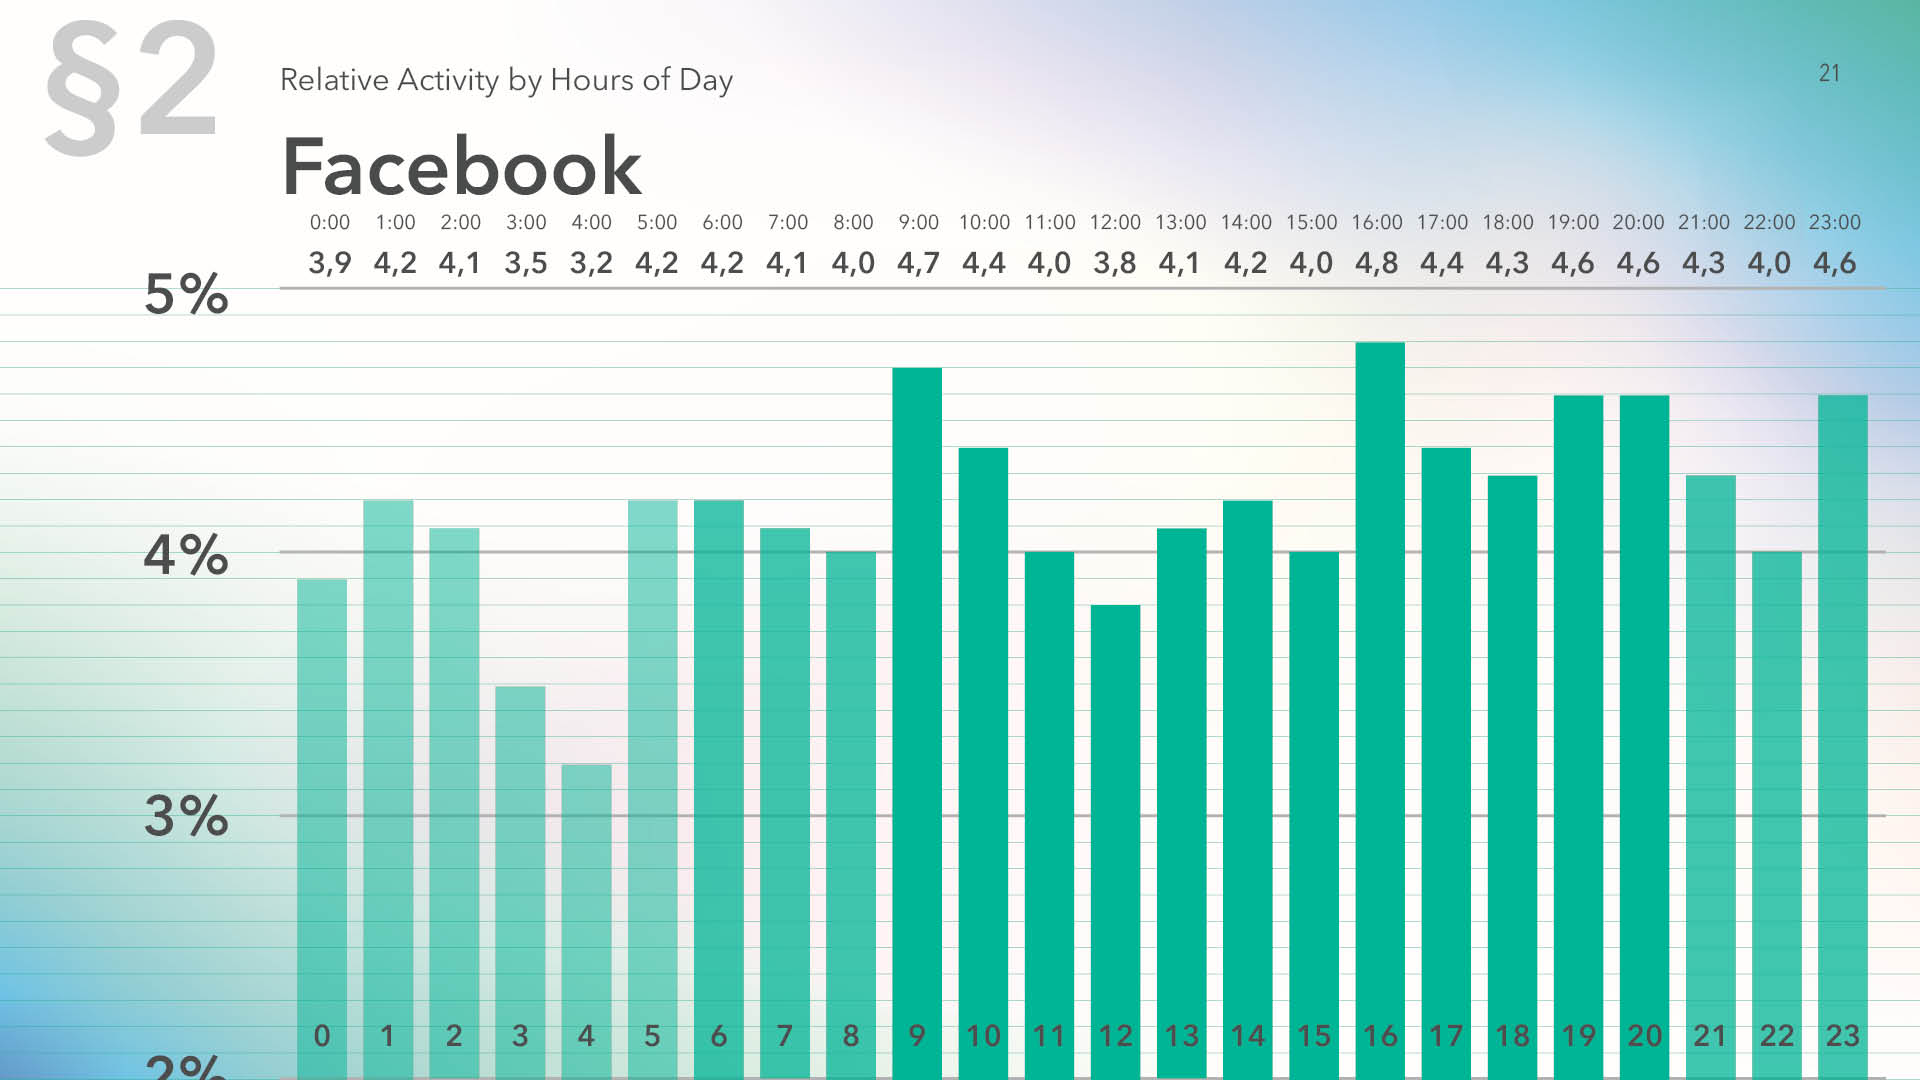 Relative audience activity on Facebook by hour of the day for 2019